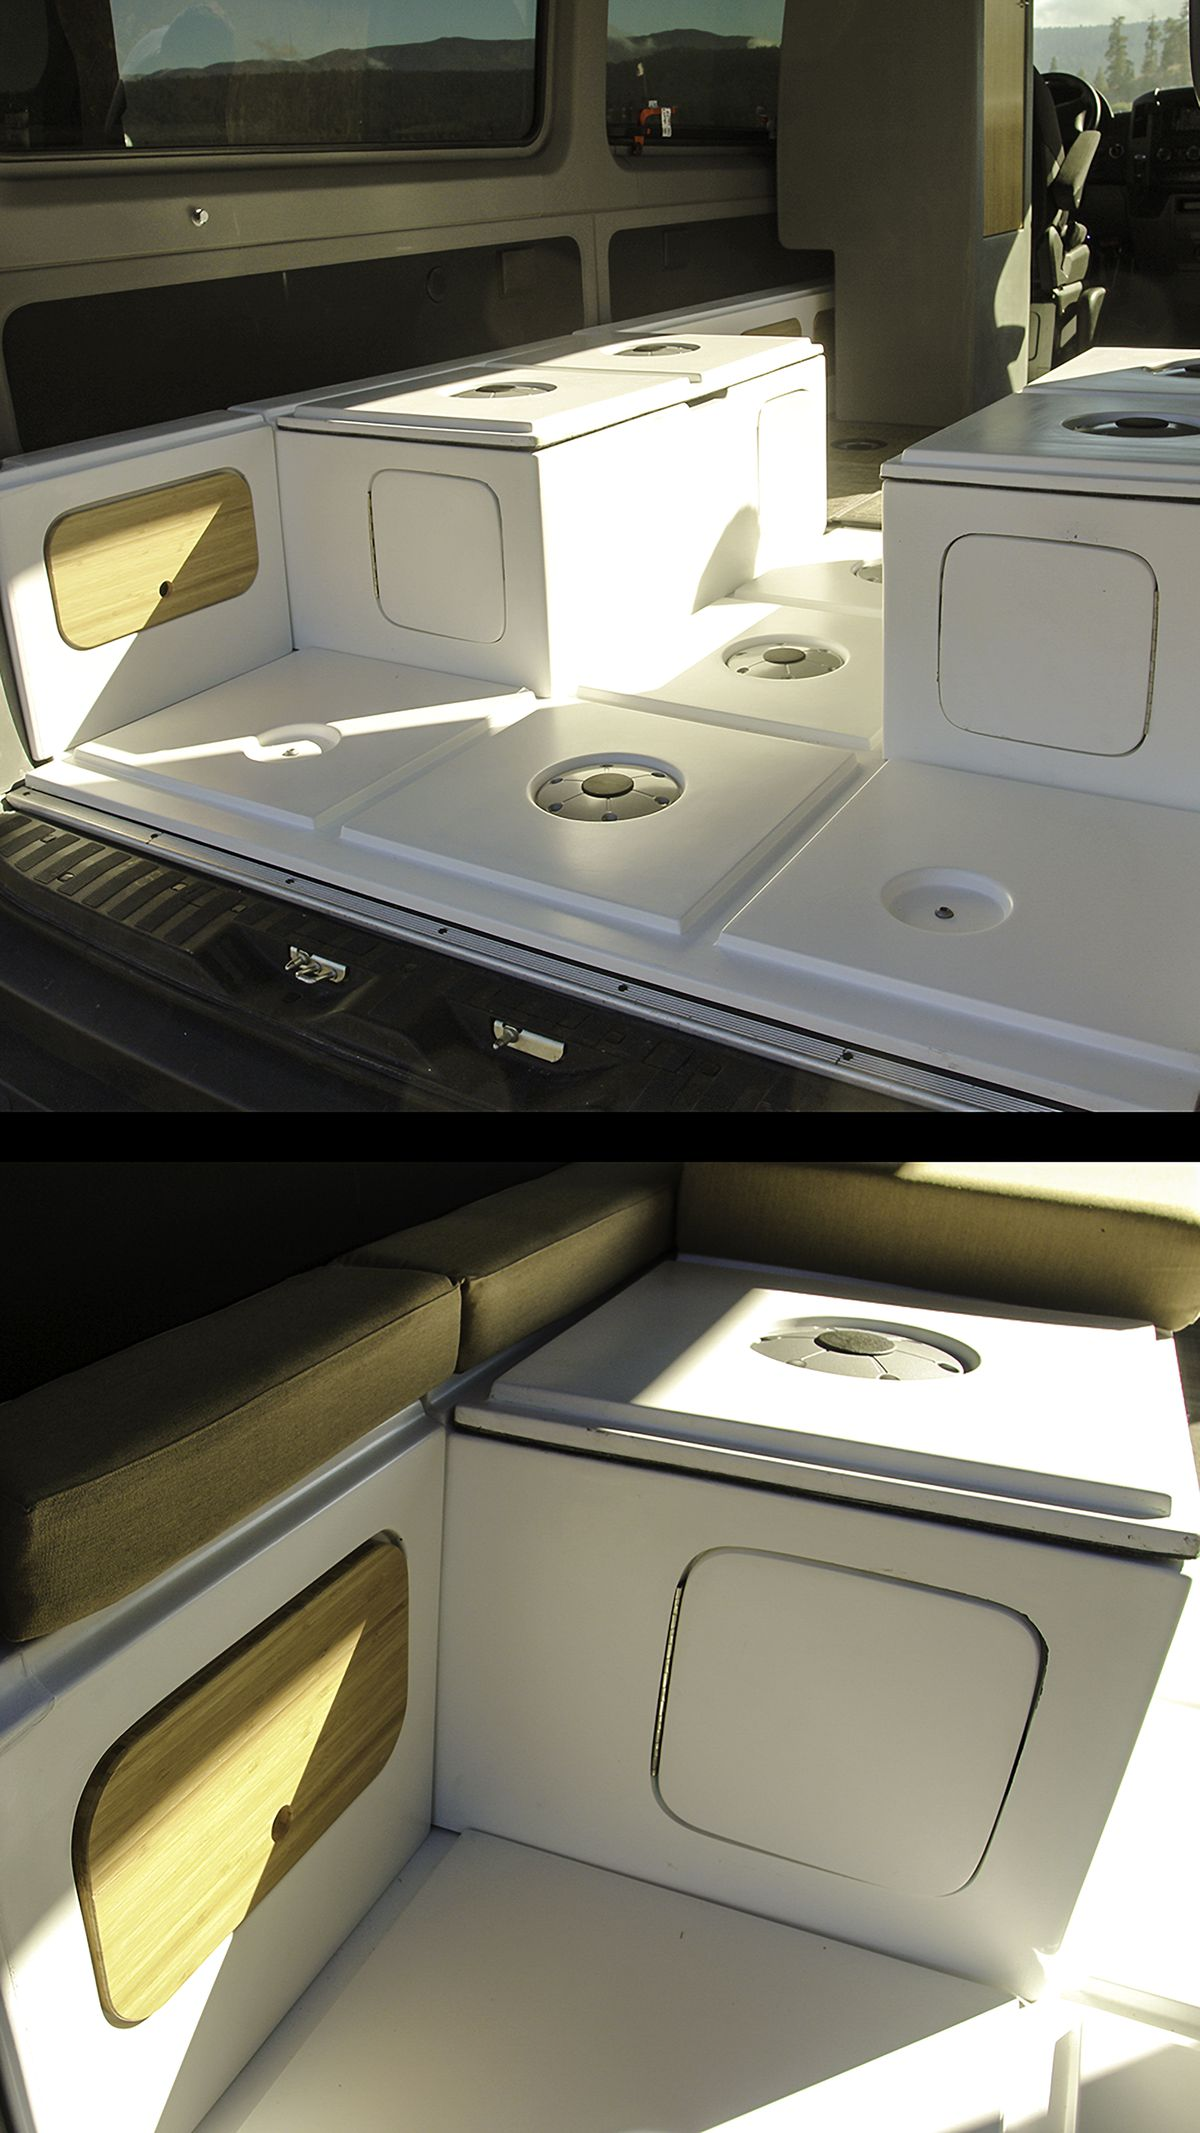 The white fiberglass floors have boxes that cover the wheel wells and storage in the white cubes.